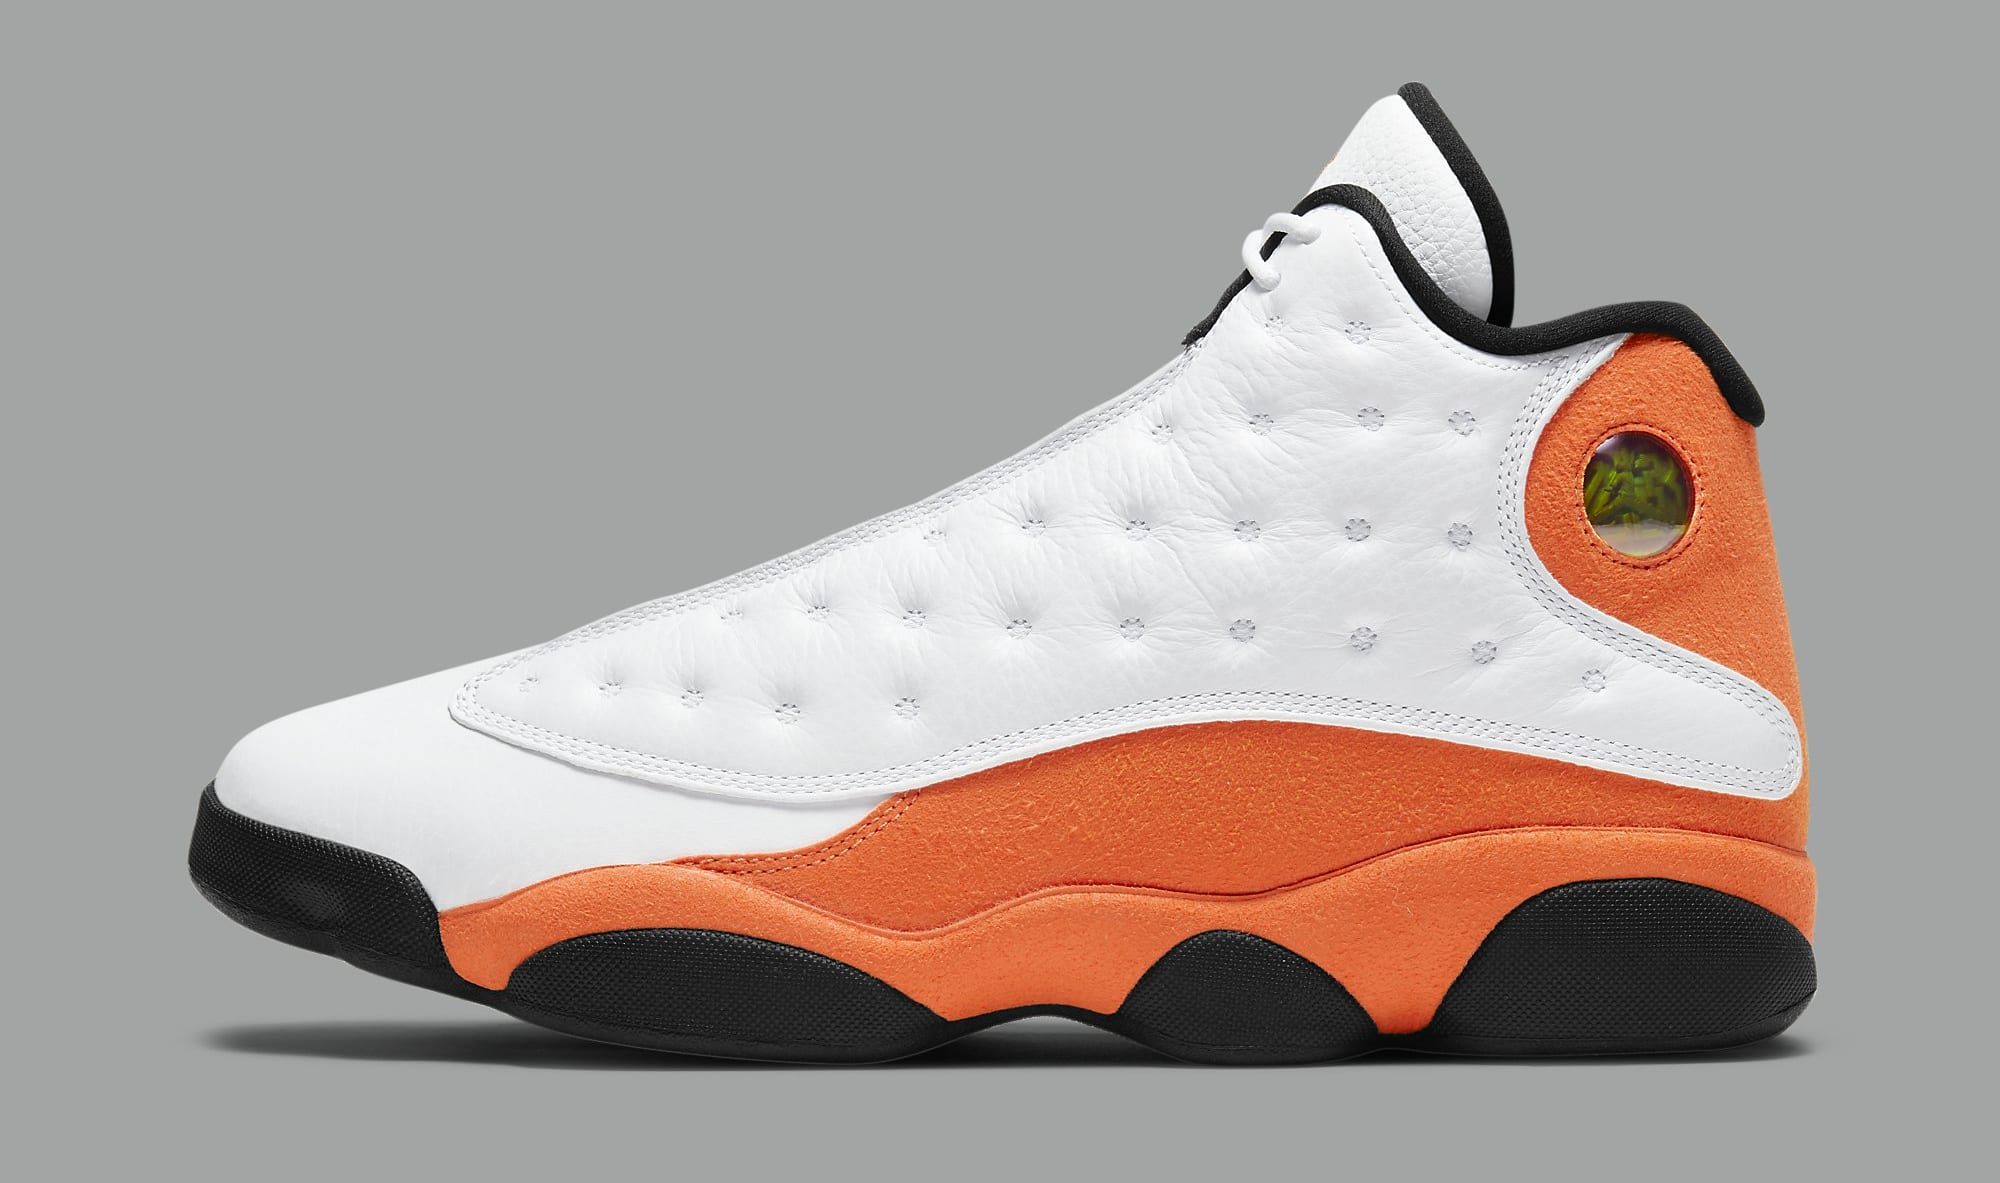 Air Jordan 13 Retro 'Starfish' 414571-108 Lateral